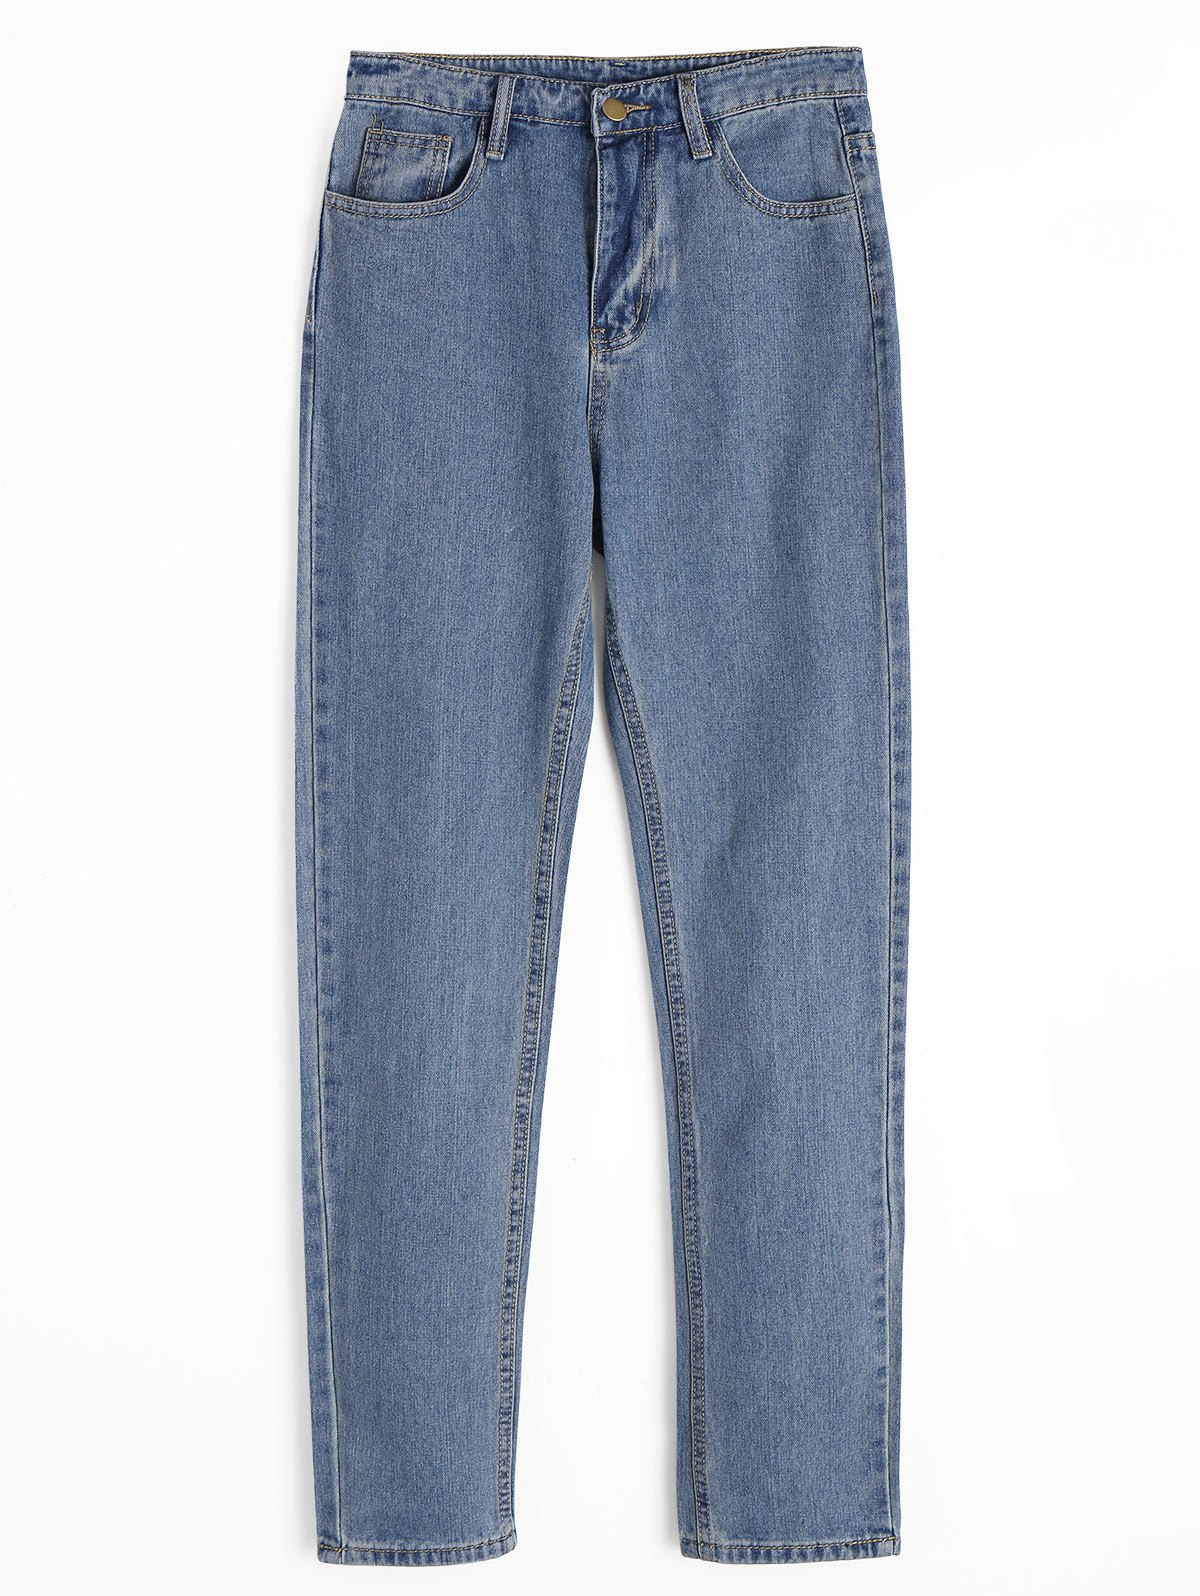 Zipper Fly Straight Jeans with Pockets 230731202